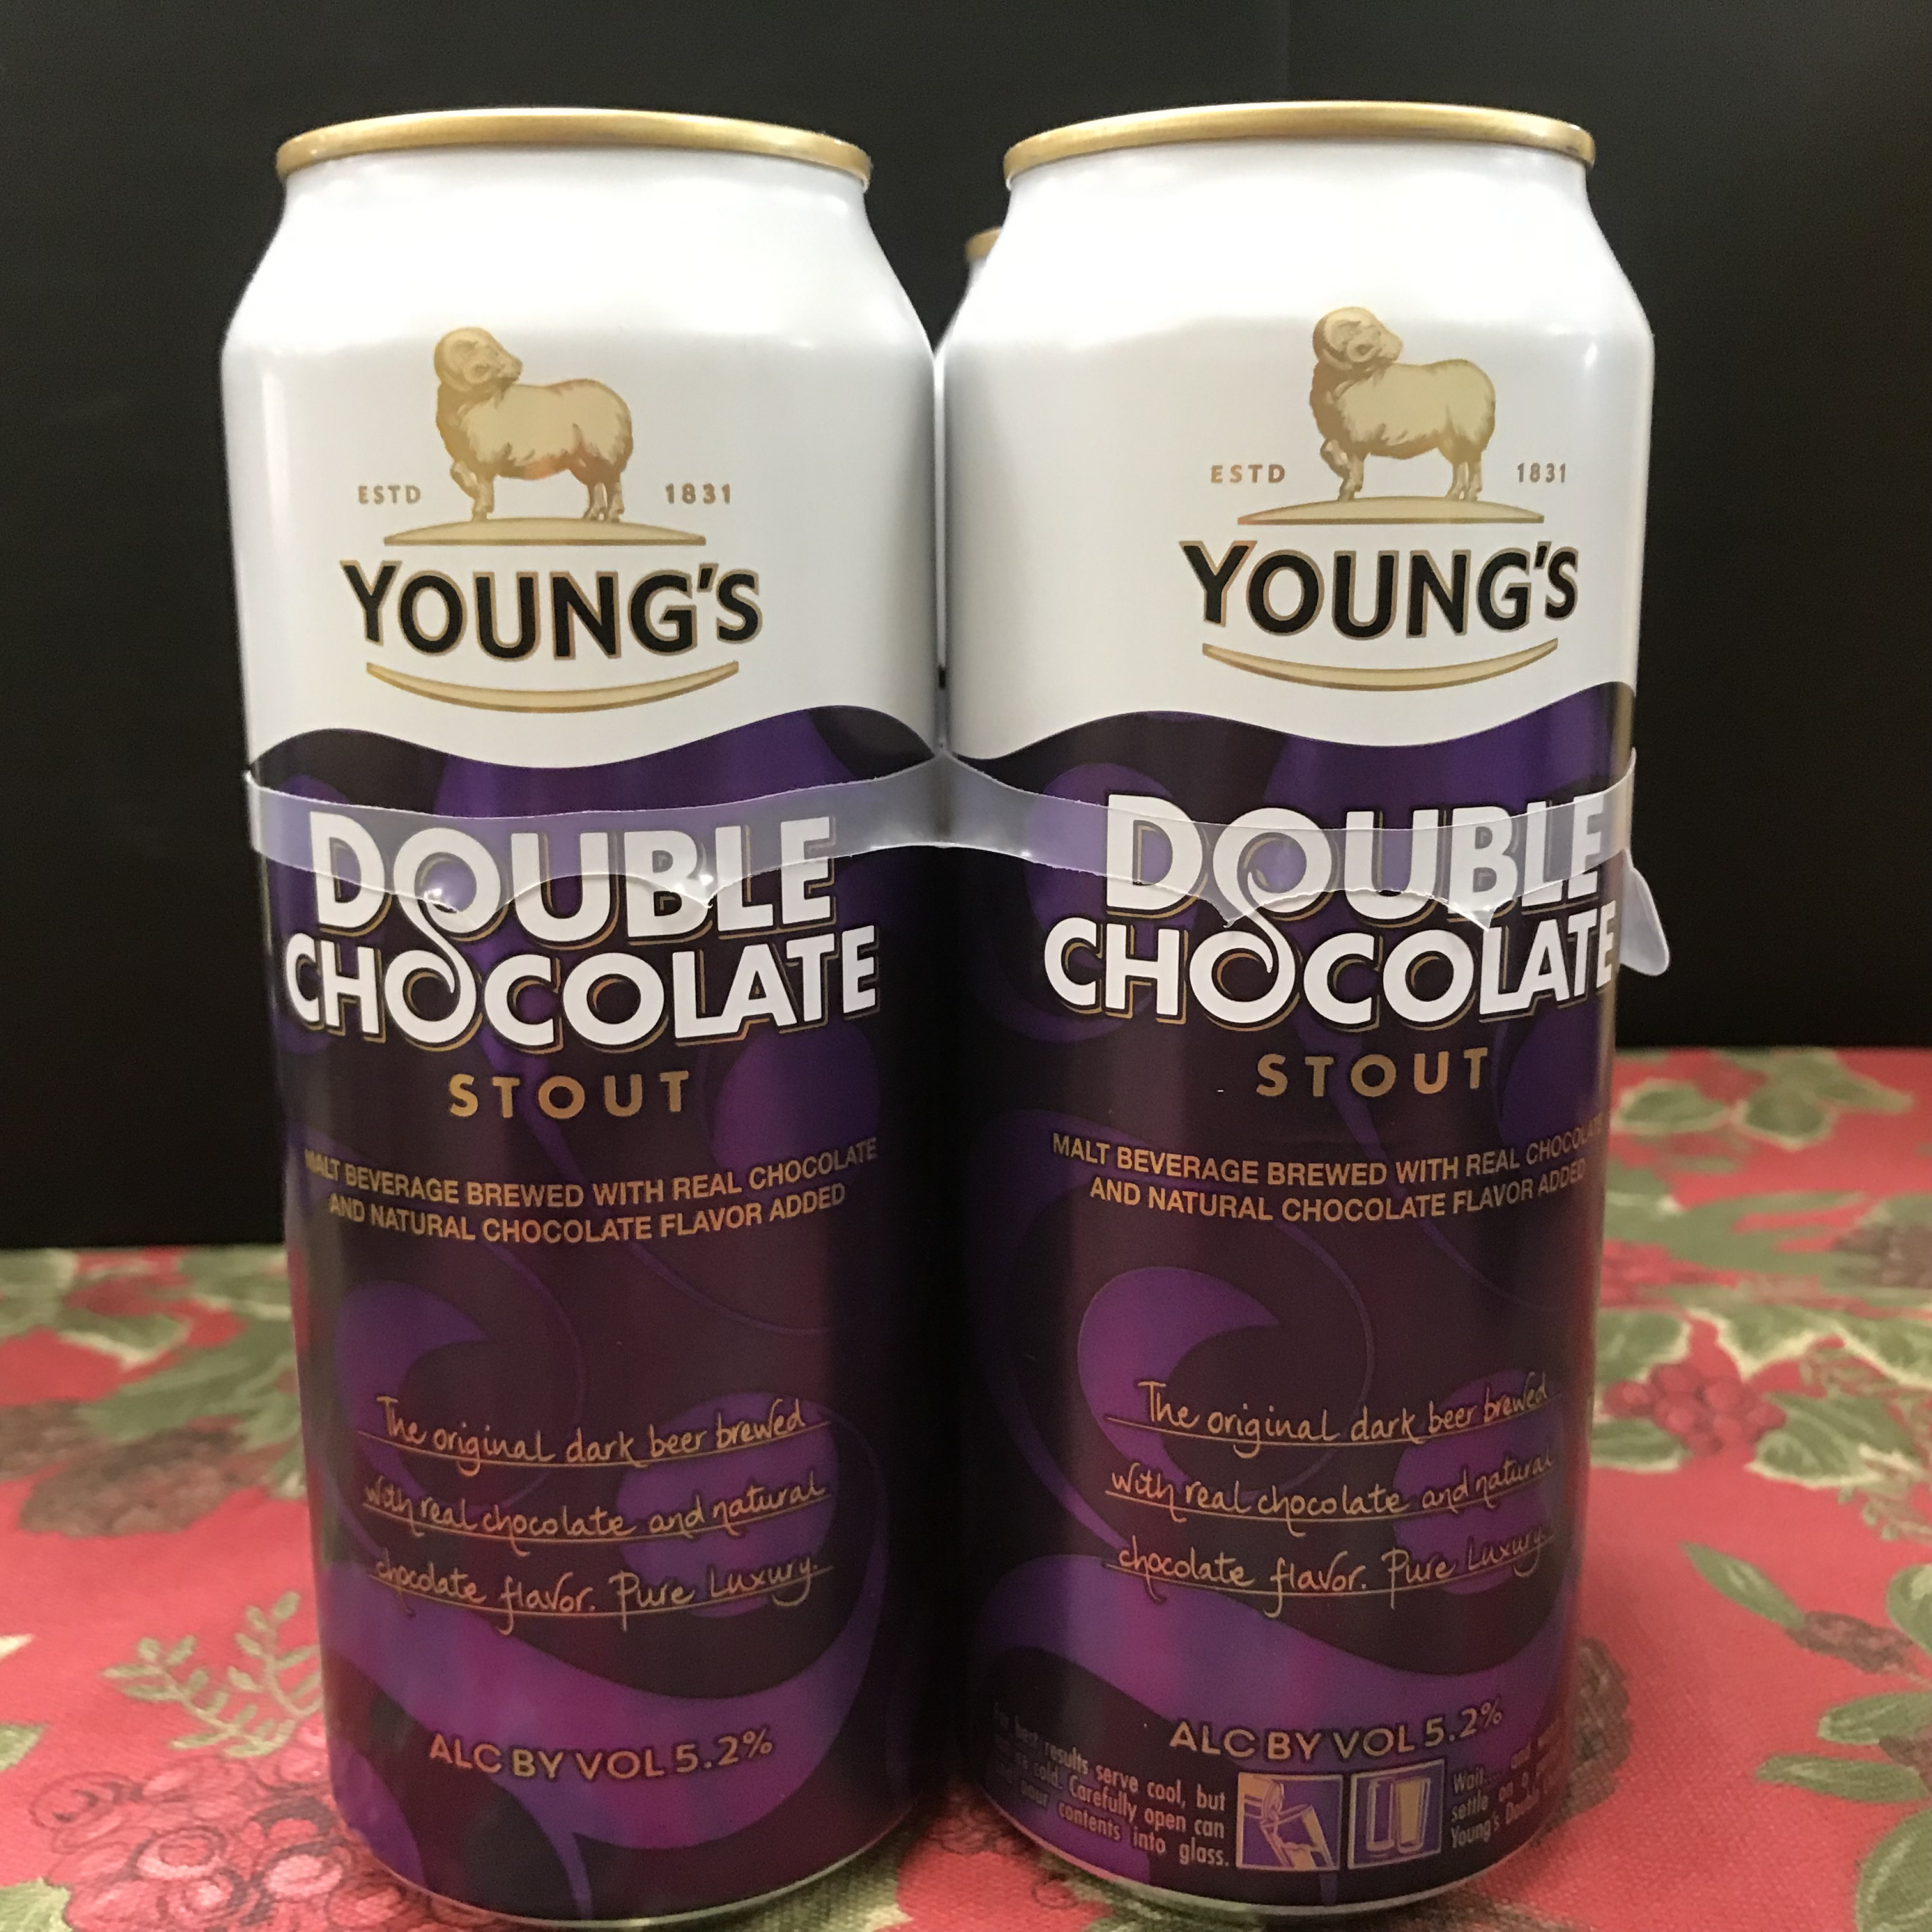 Young's Double Chocolate Stout 4 x 1 pint